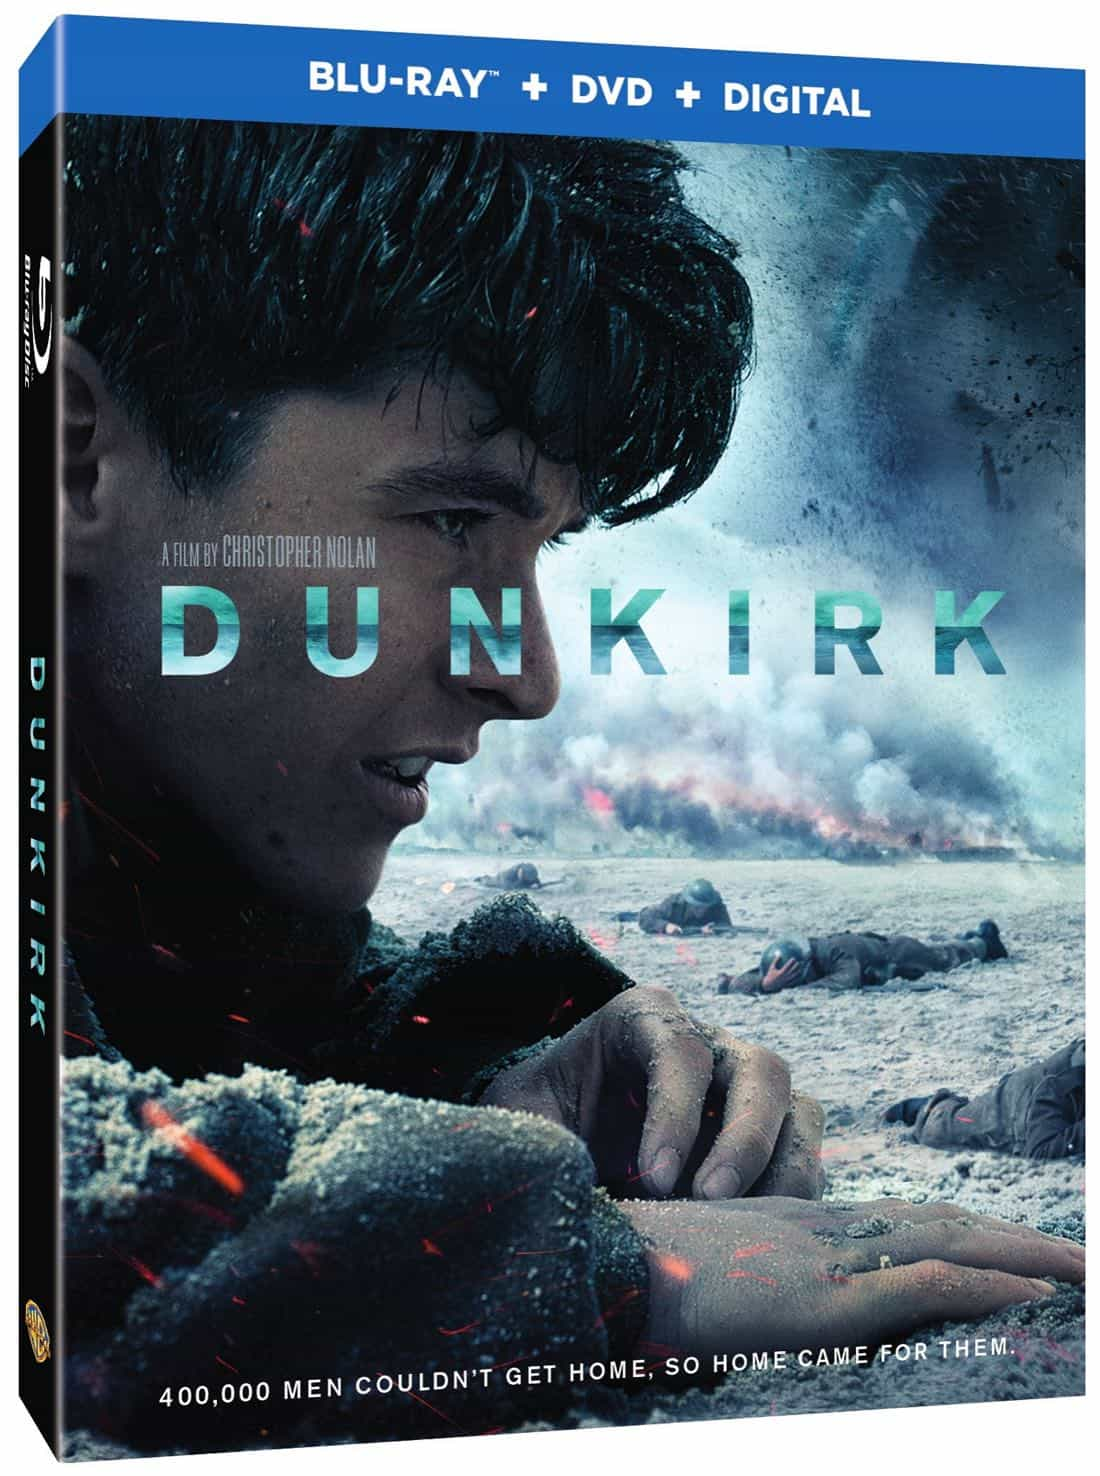 Dunkirk-Bluray-DVD-HD-Cover-1